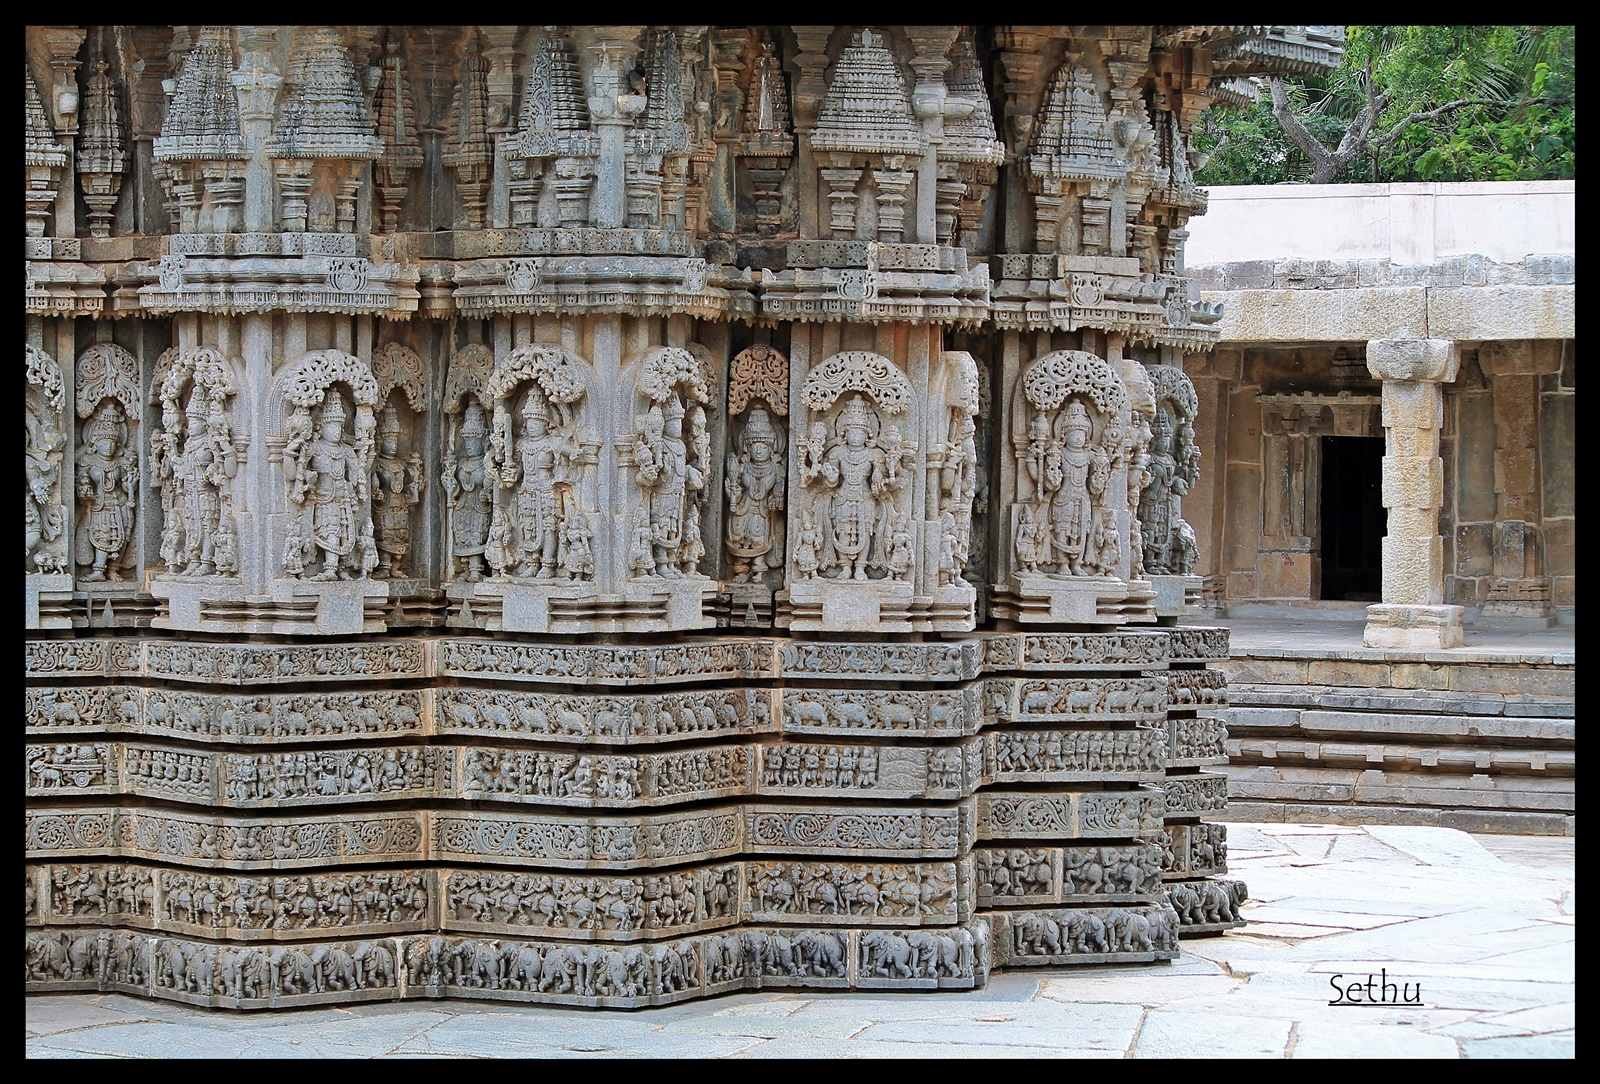 Images of Gods and Goddesses on the outer wall